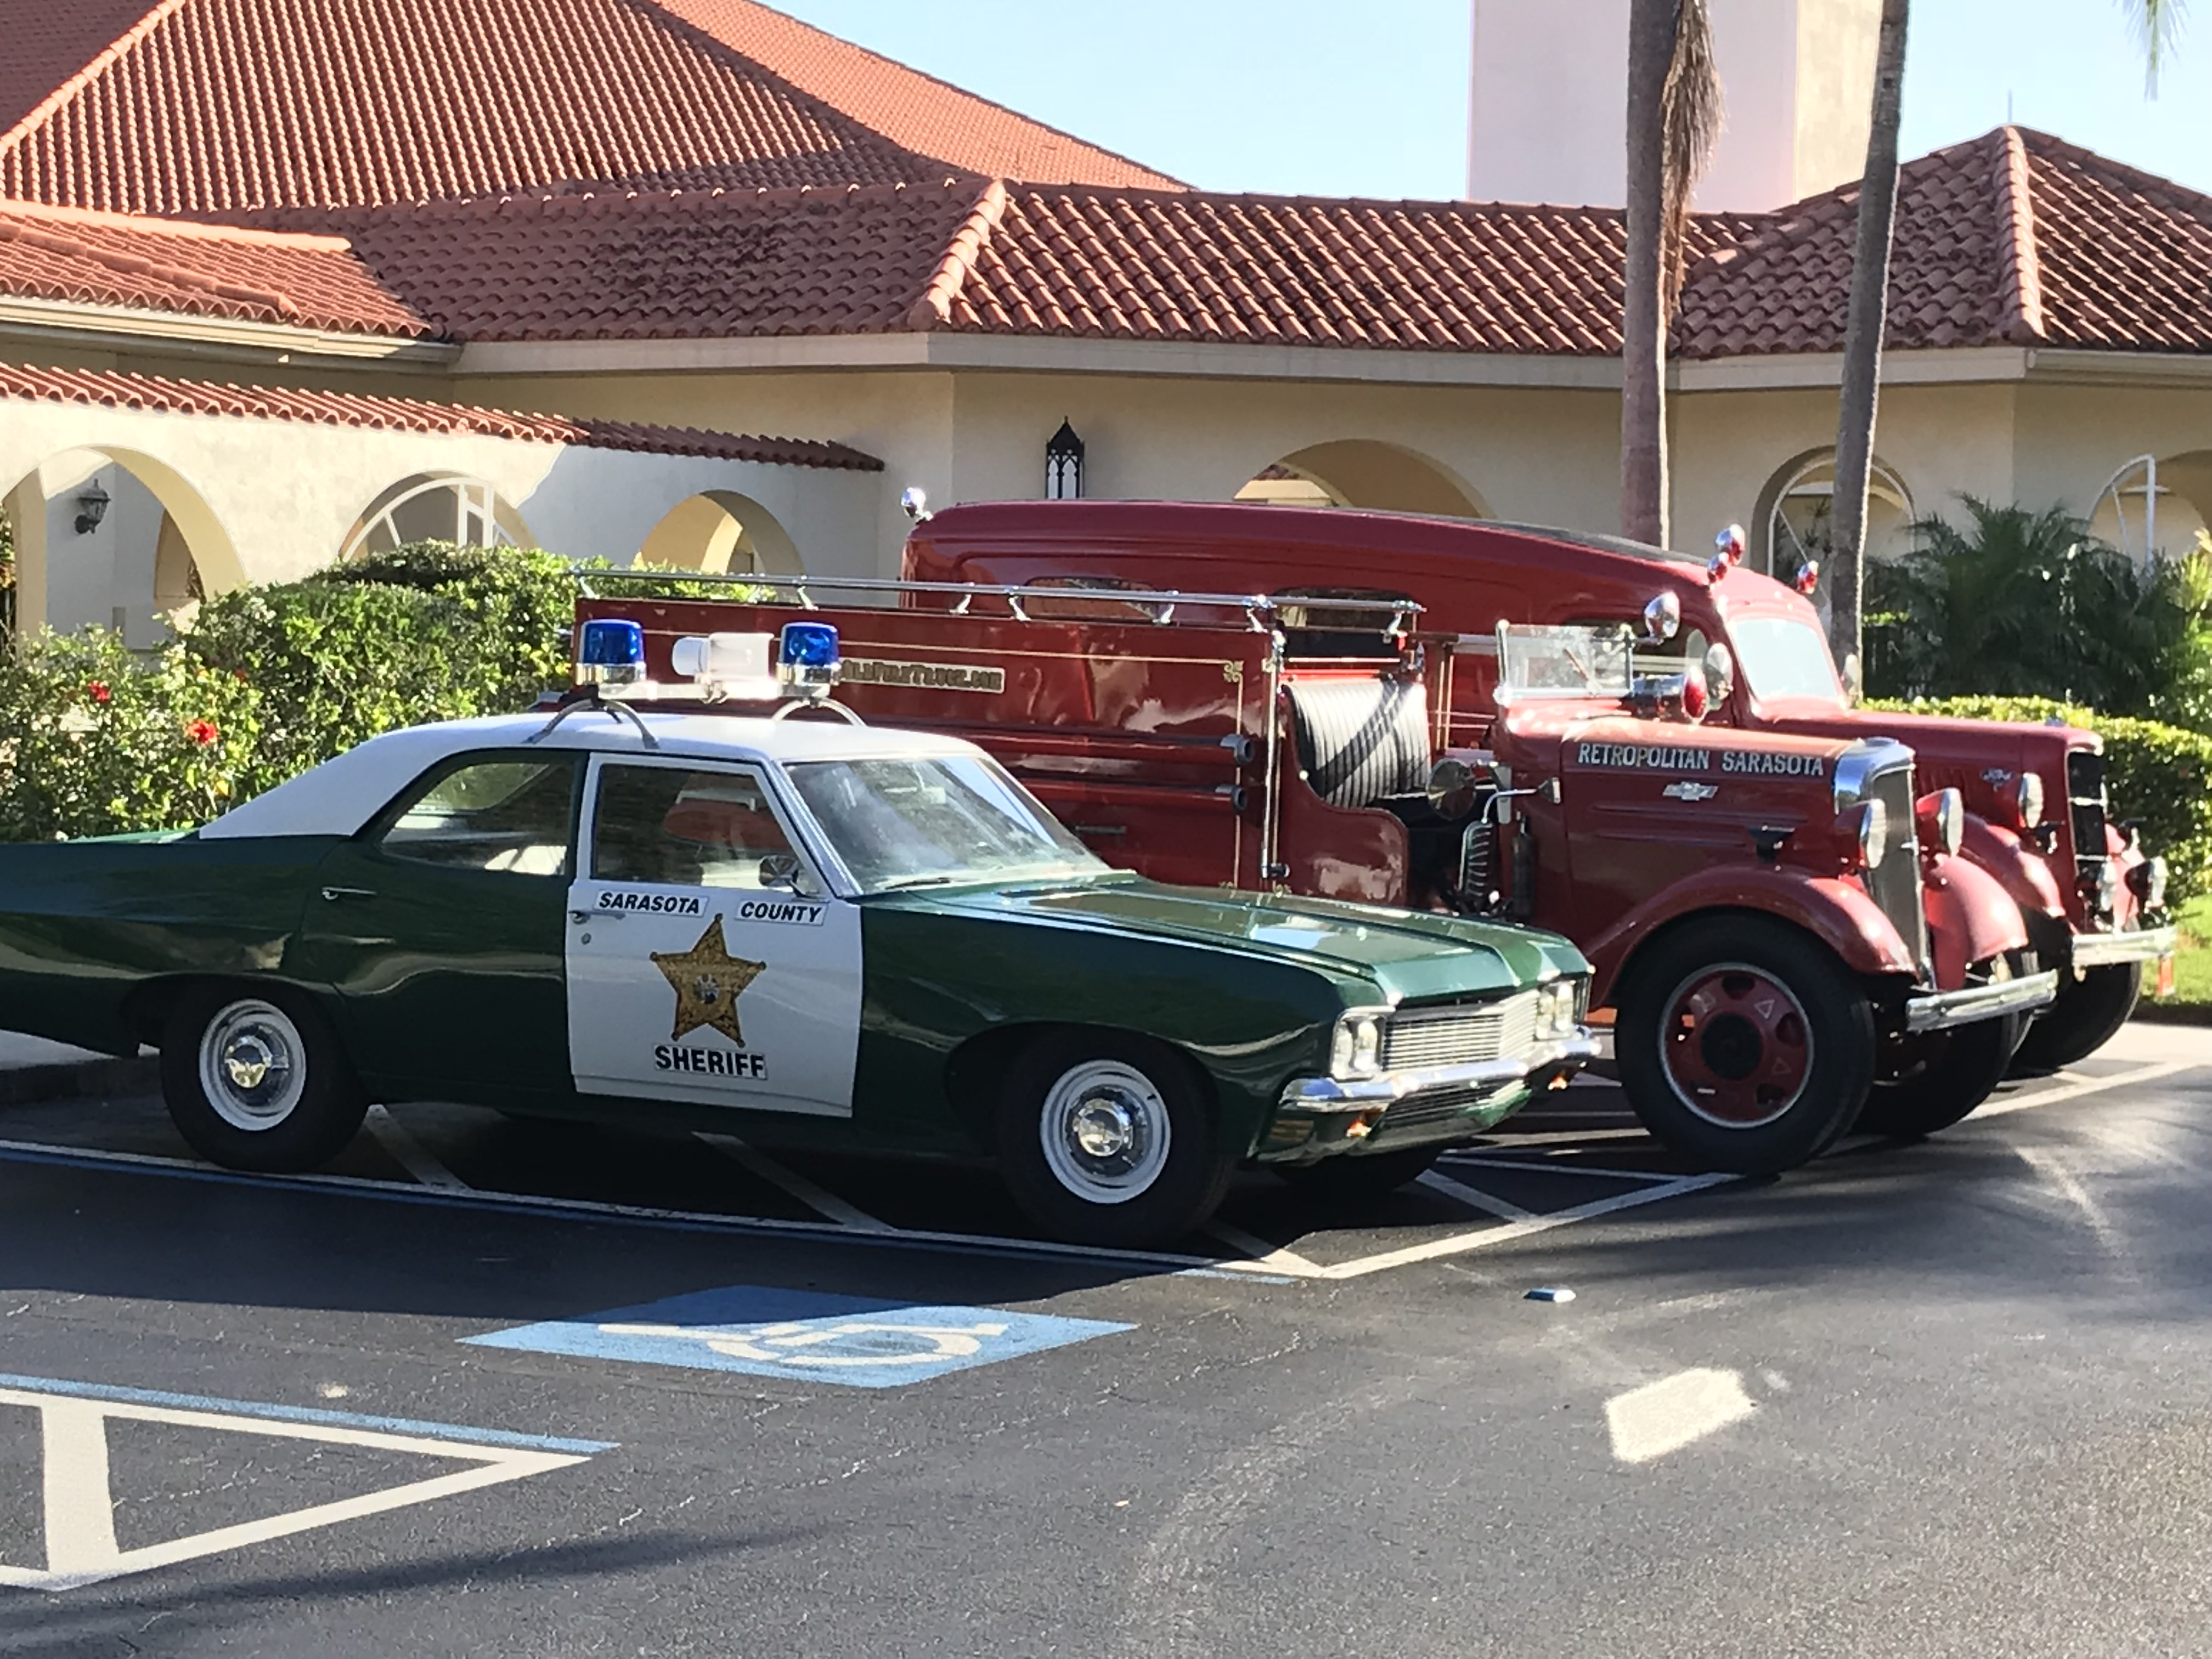 My 3 post-retirement restorations: 1970 Chevy Bel Air (owned by Sarasota Sheriff's Office), 35 Chevy pumper and 36 Ford rescue truck.